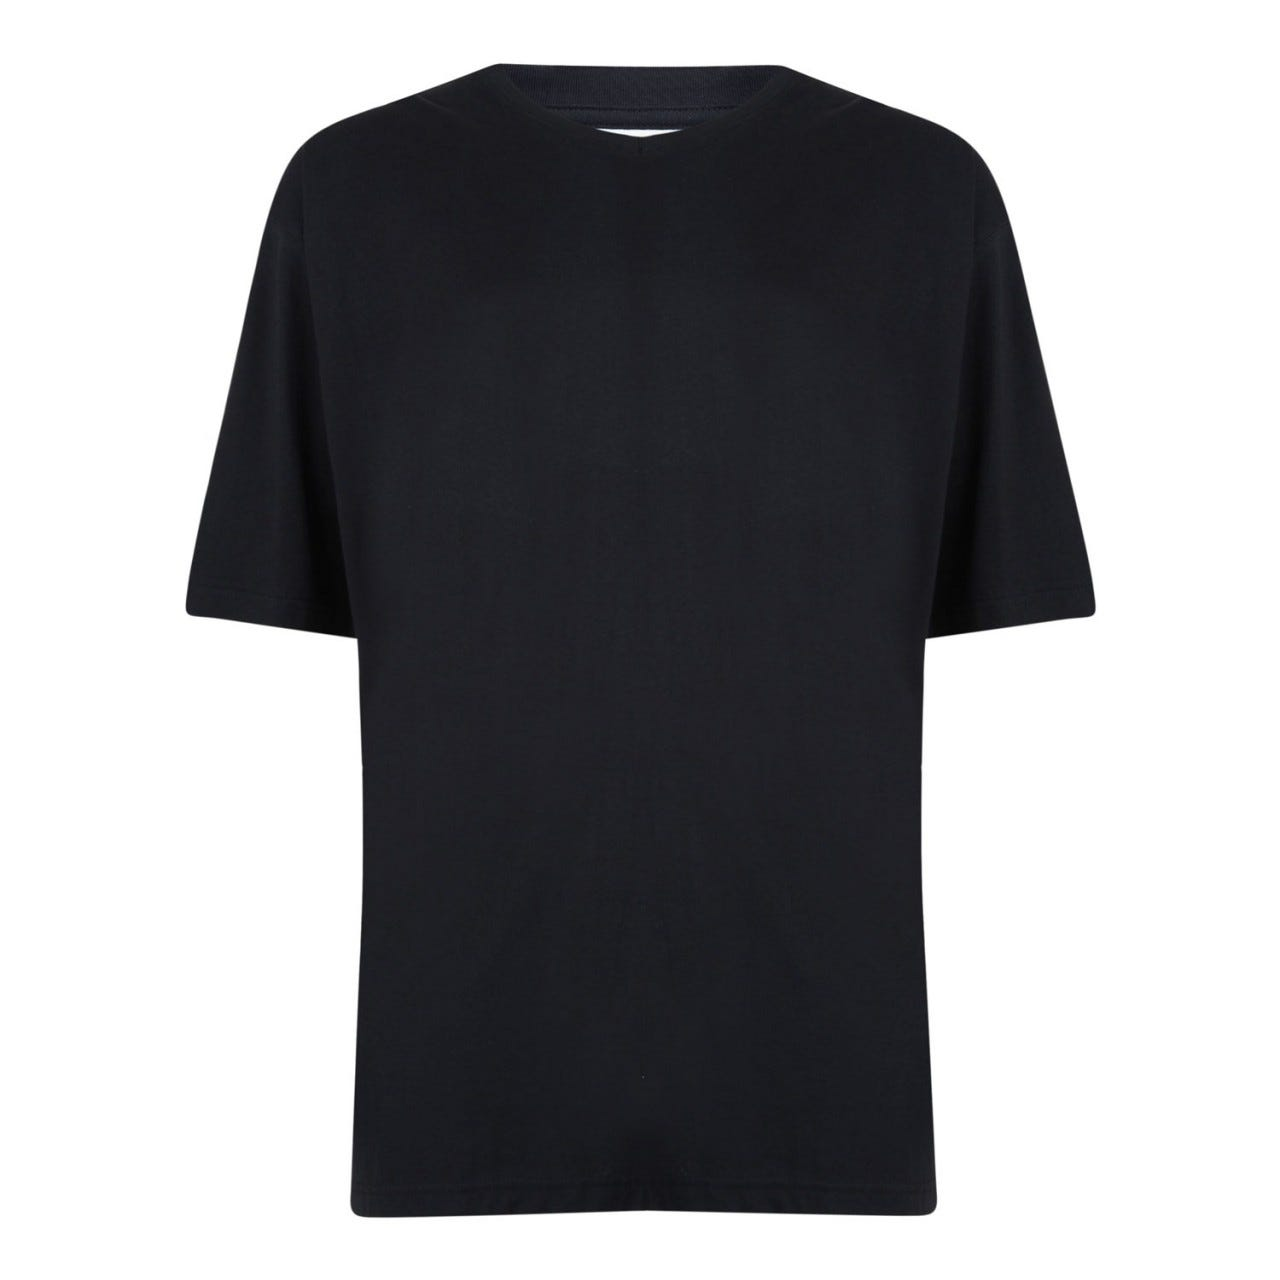 45b762322bfa KAM V-Neck Long Length T-Shirt|Black|6XL,7XL,8XL Big Clothing 4 U